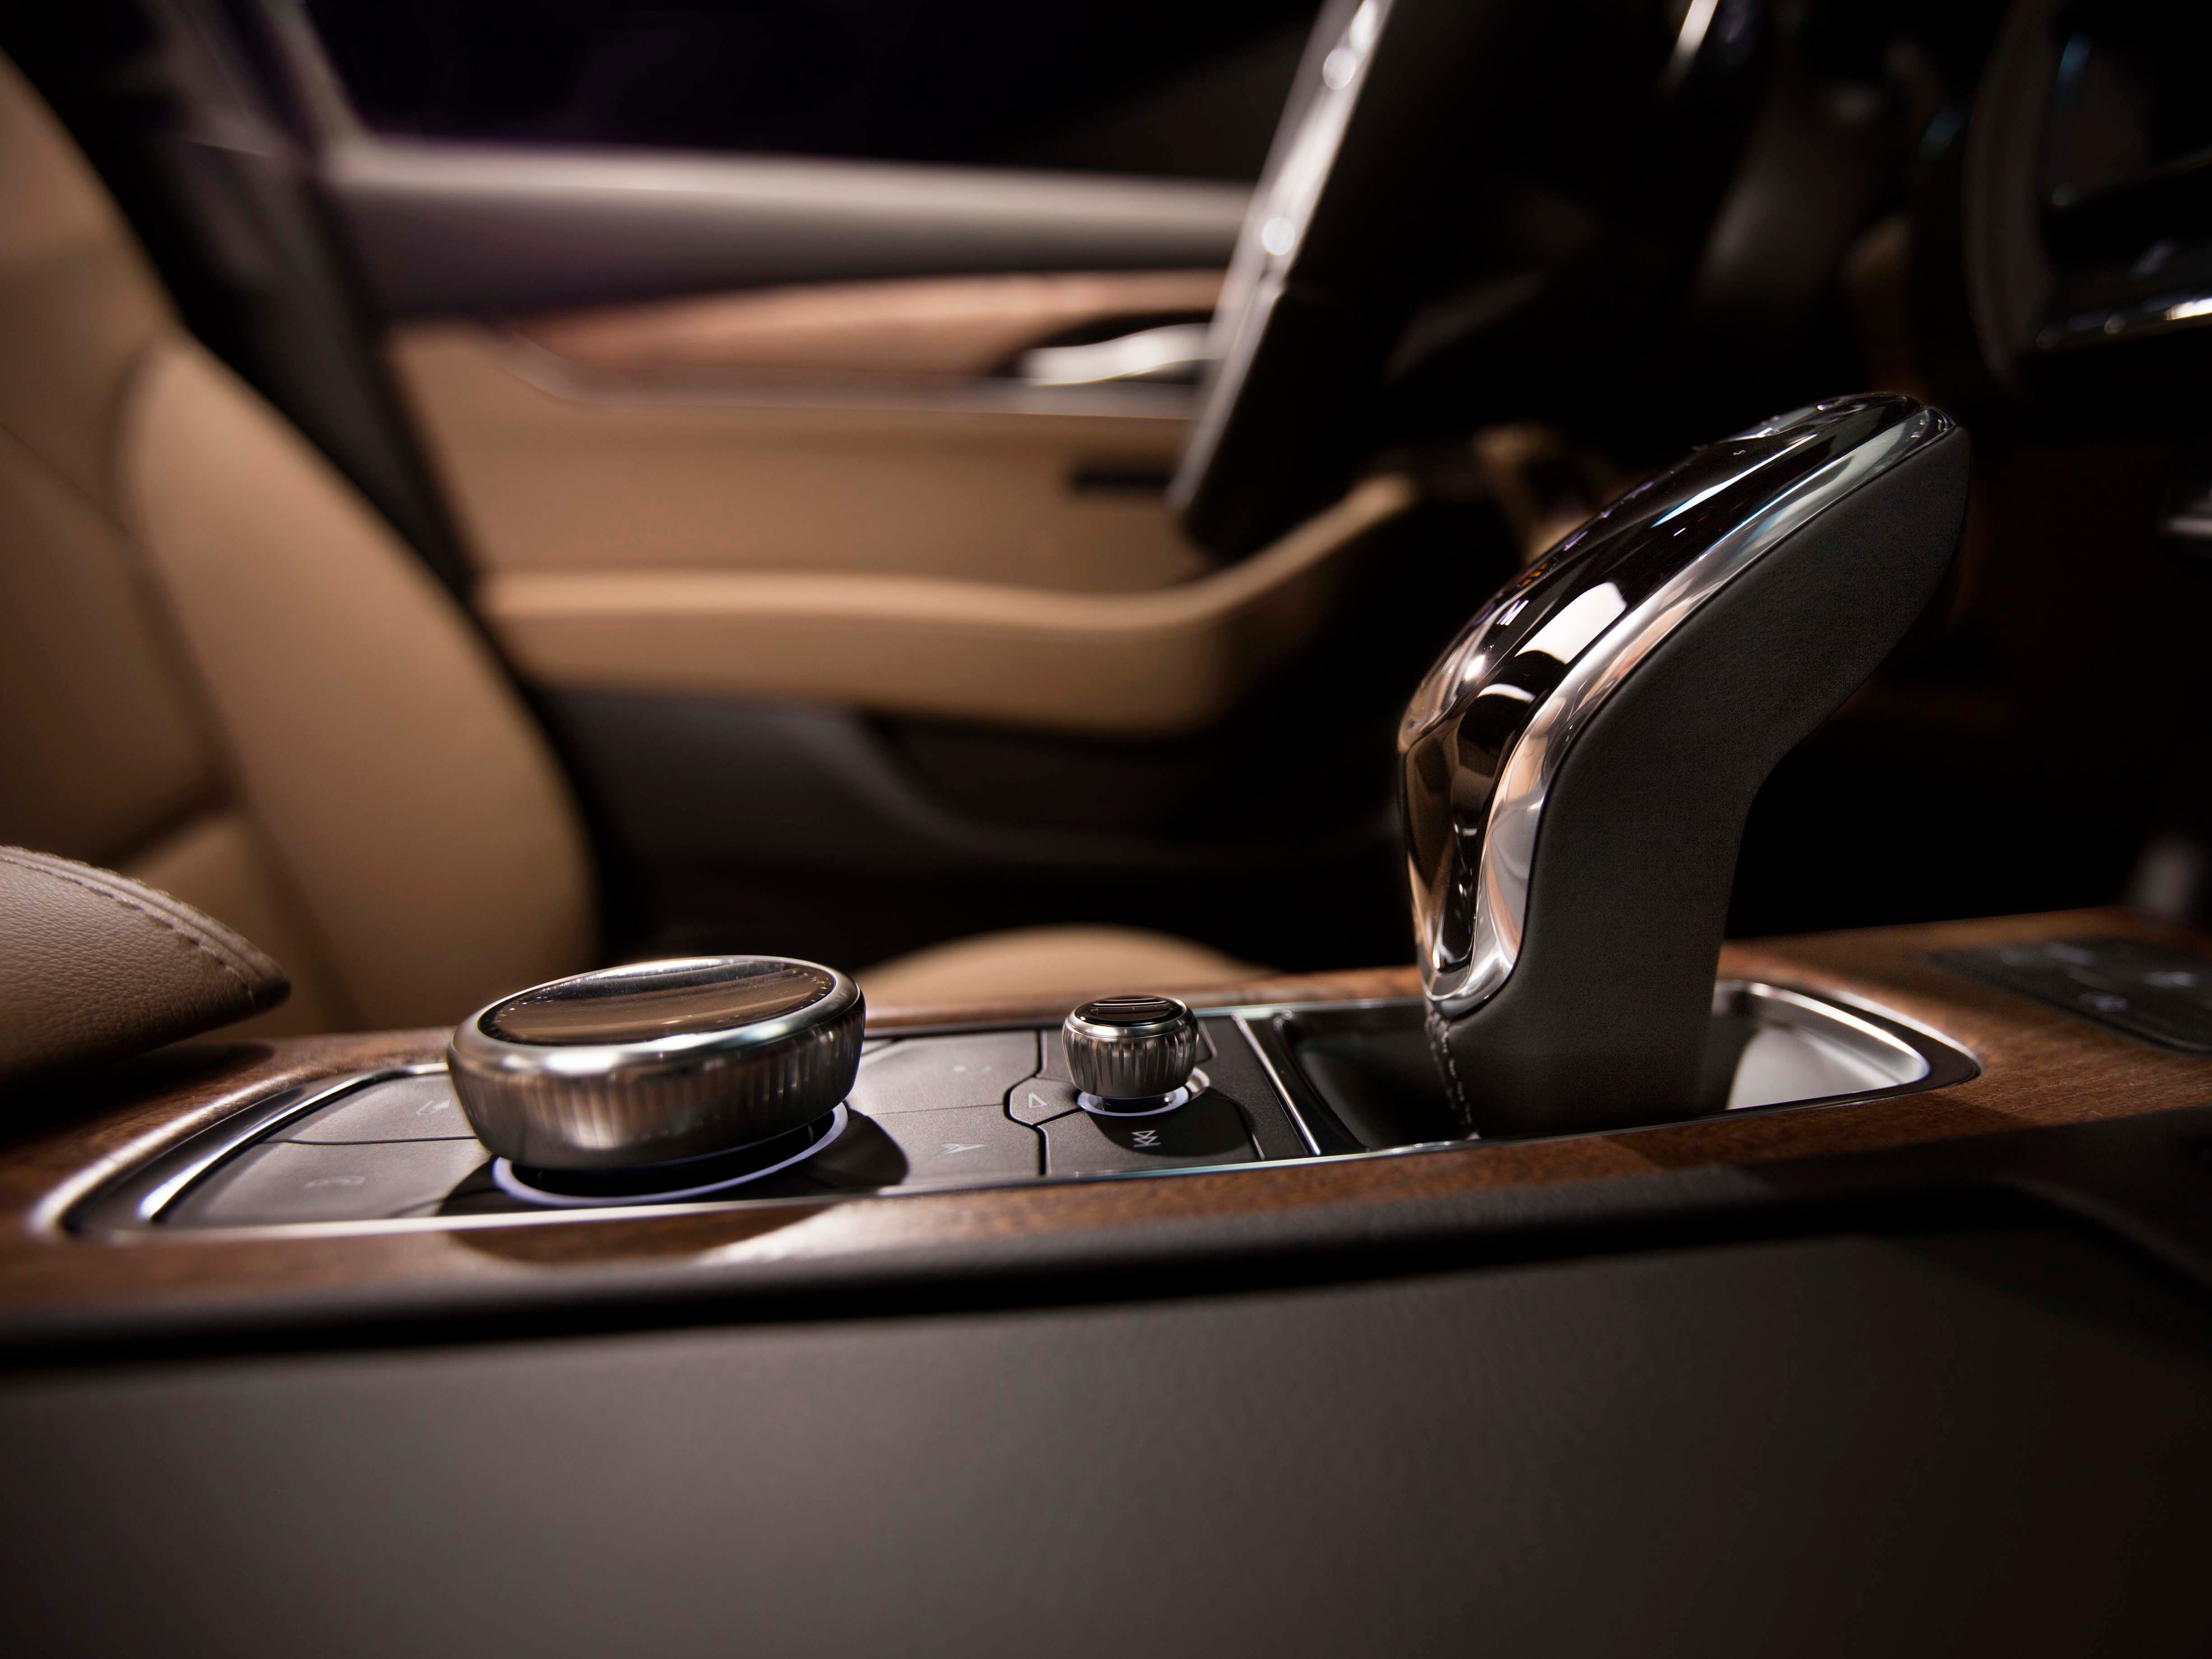 The 2020 Cadillac CT5 features a center-console rotary dial to control the infotainment system. The screen also responds to touch commands.